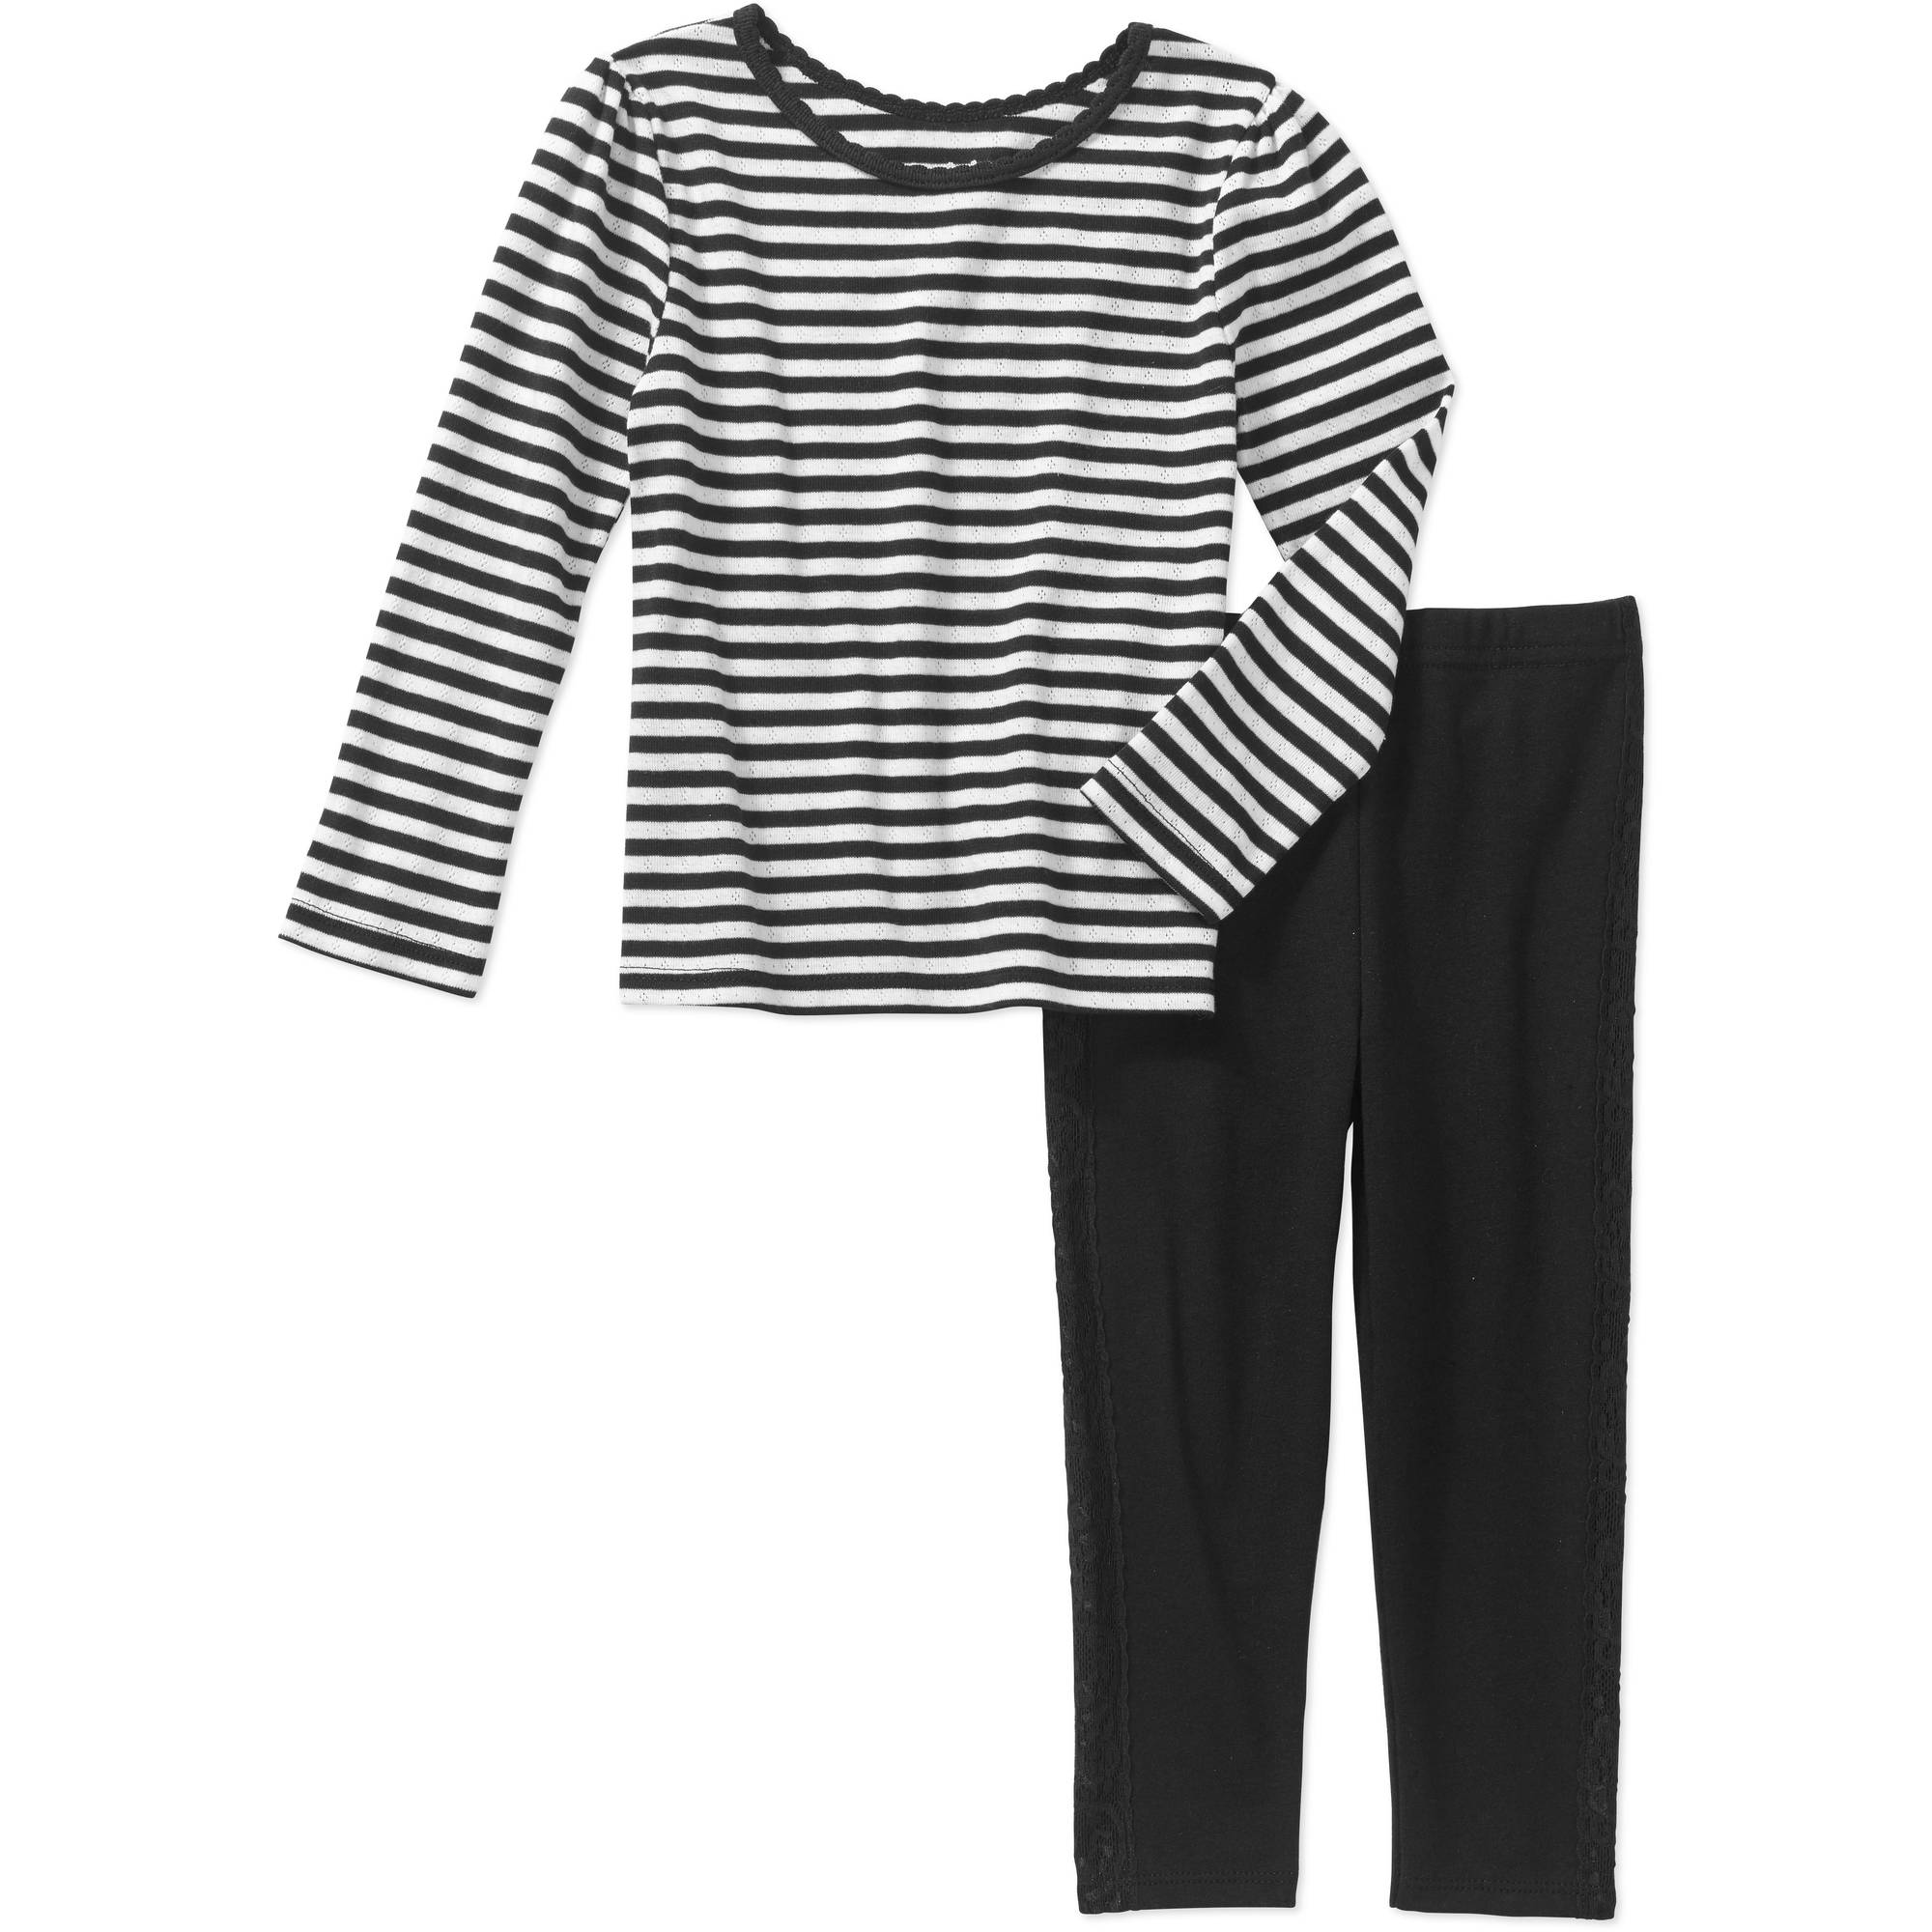 Garanimals Baby Toddler Girls' 2-Piece Long Sleeve Stripe Tee and Tuxedo Leggings Set